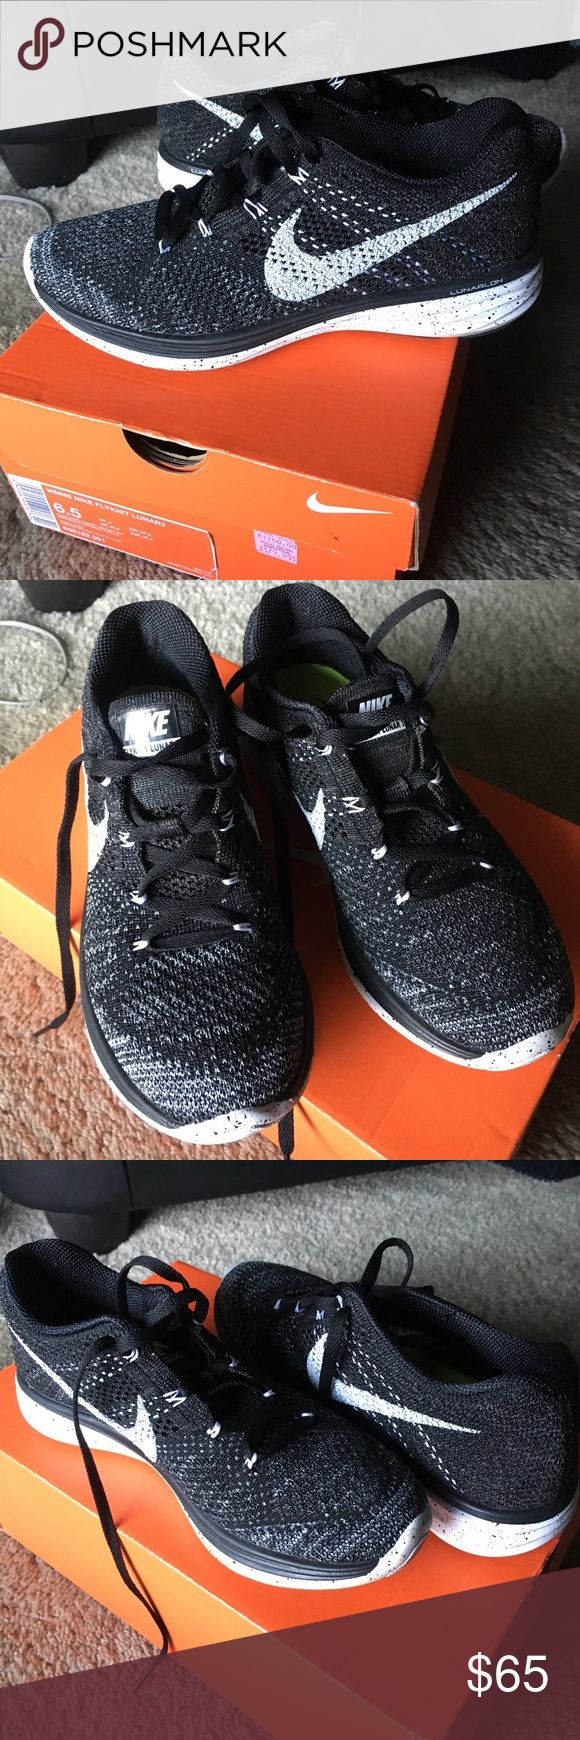 Nike Flyknit lunar 3 Nike Flyknit lunar 3 black and white women's size 6.5 in excellent condition barely worn Nike Shoes Athletic Shoes